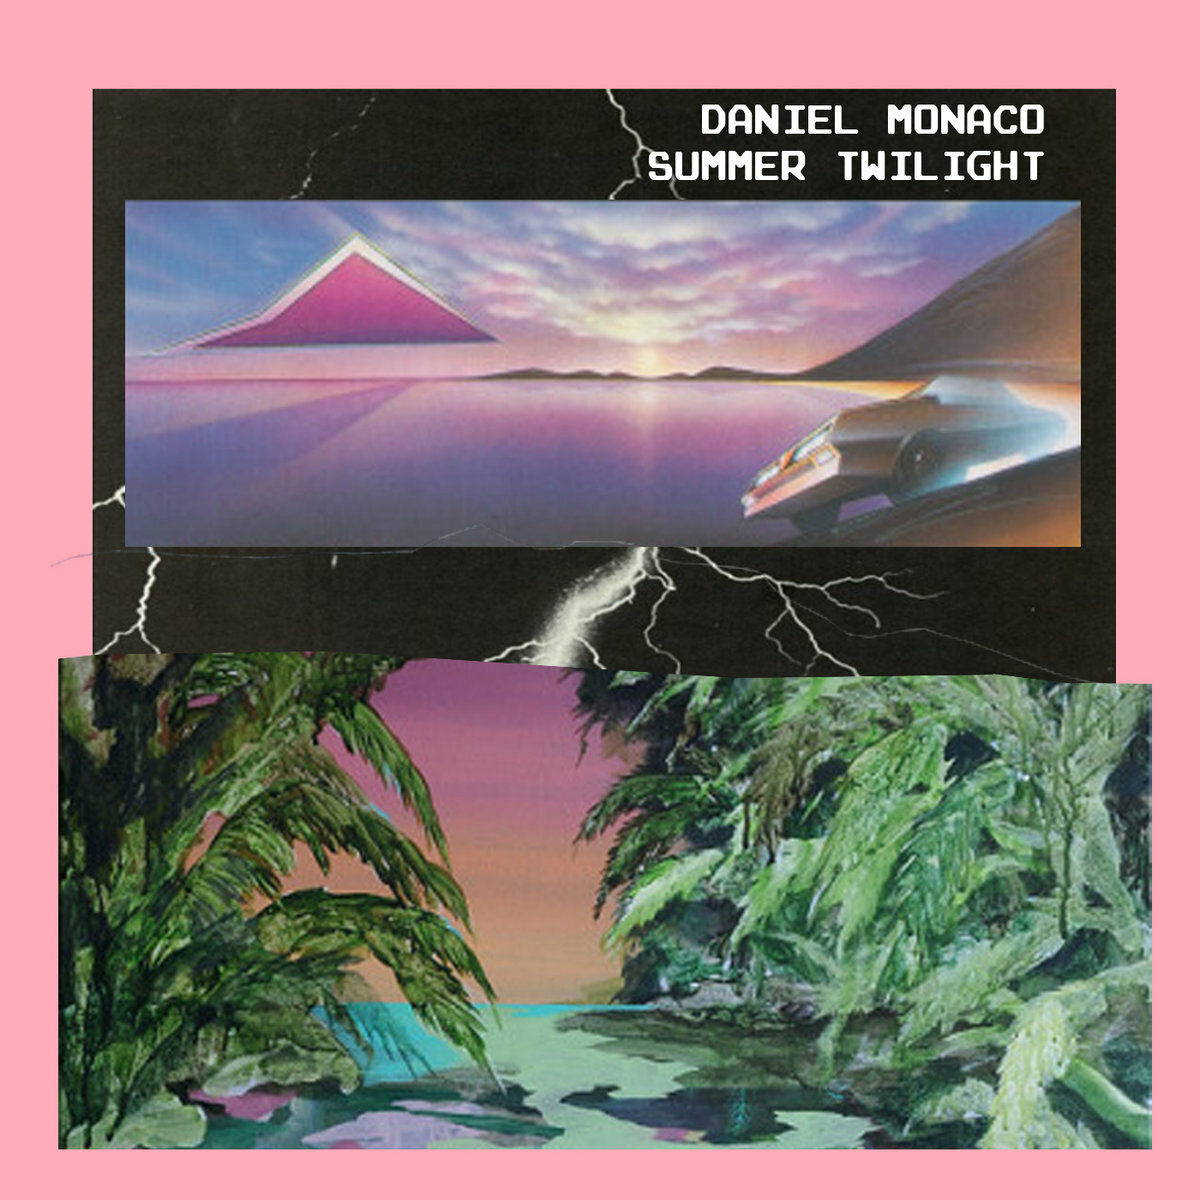 Daniel Monaco — Summer Twilight (Slow Motion, 2020)